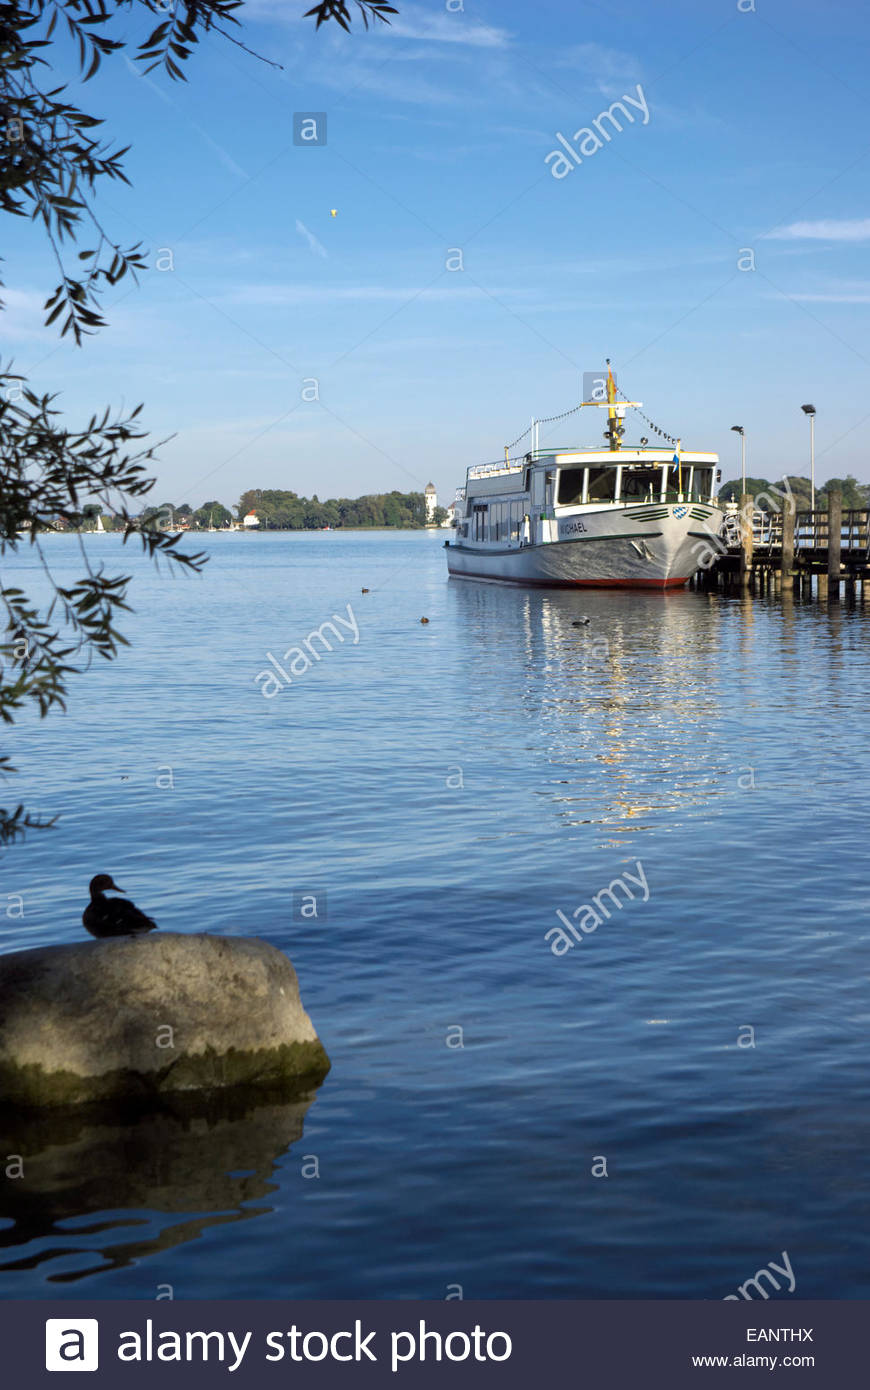 The excursion ship Michael awaits passengers for a trip to Herreninsel, an island in the Chiemsee, AKA Bavarian - Stock Image